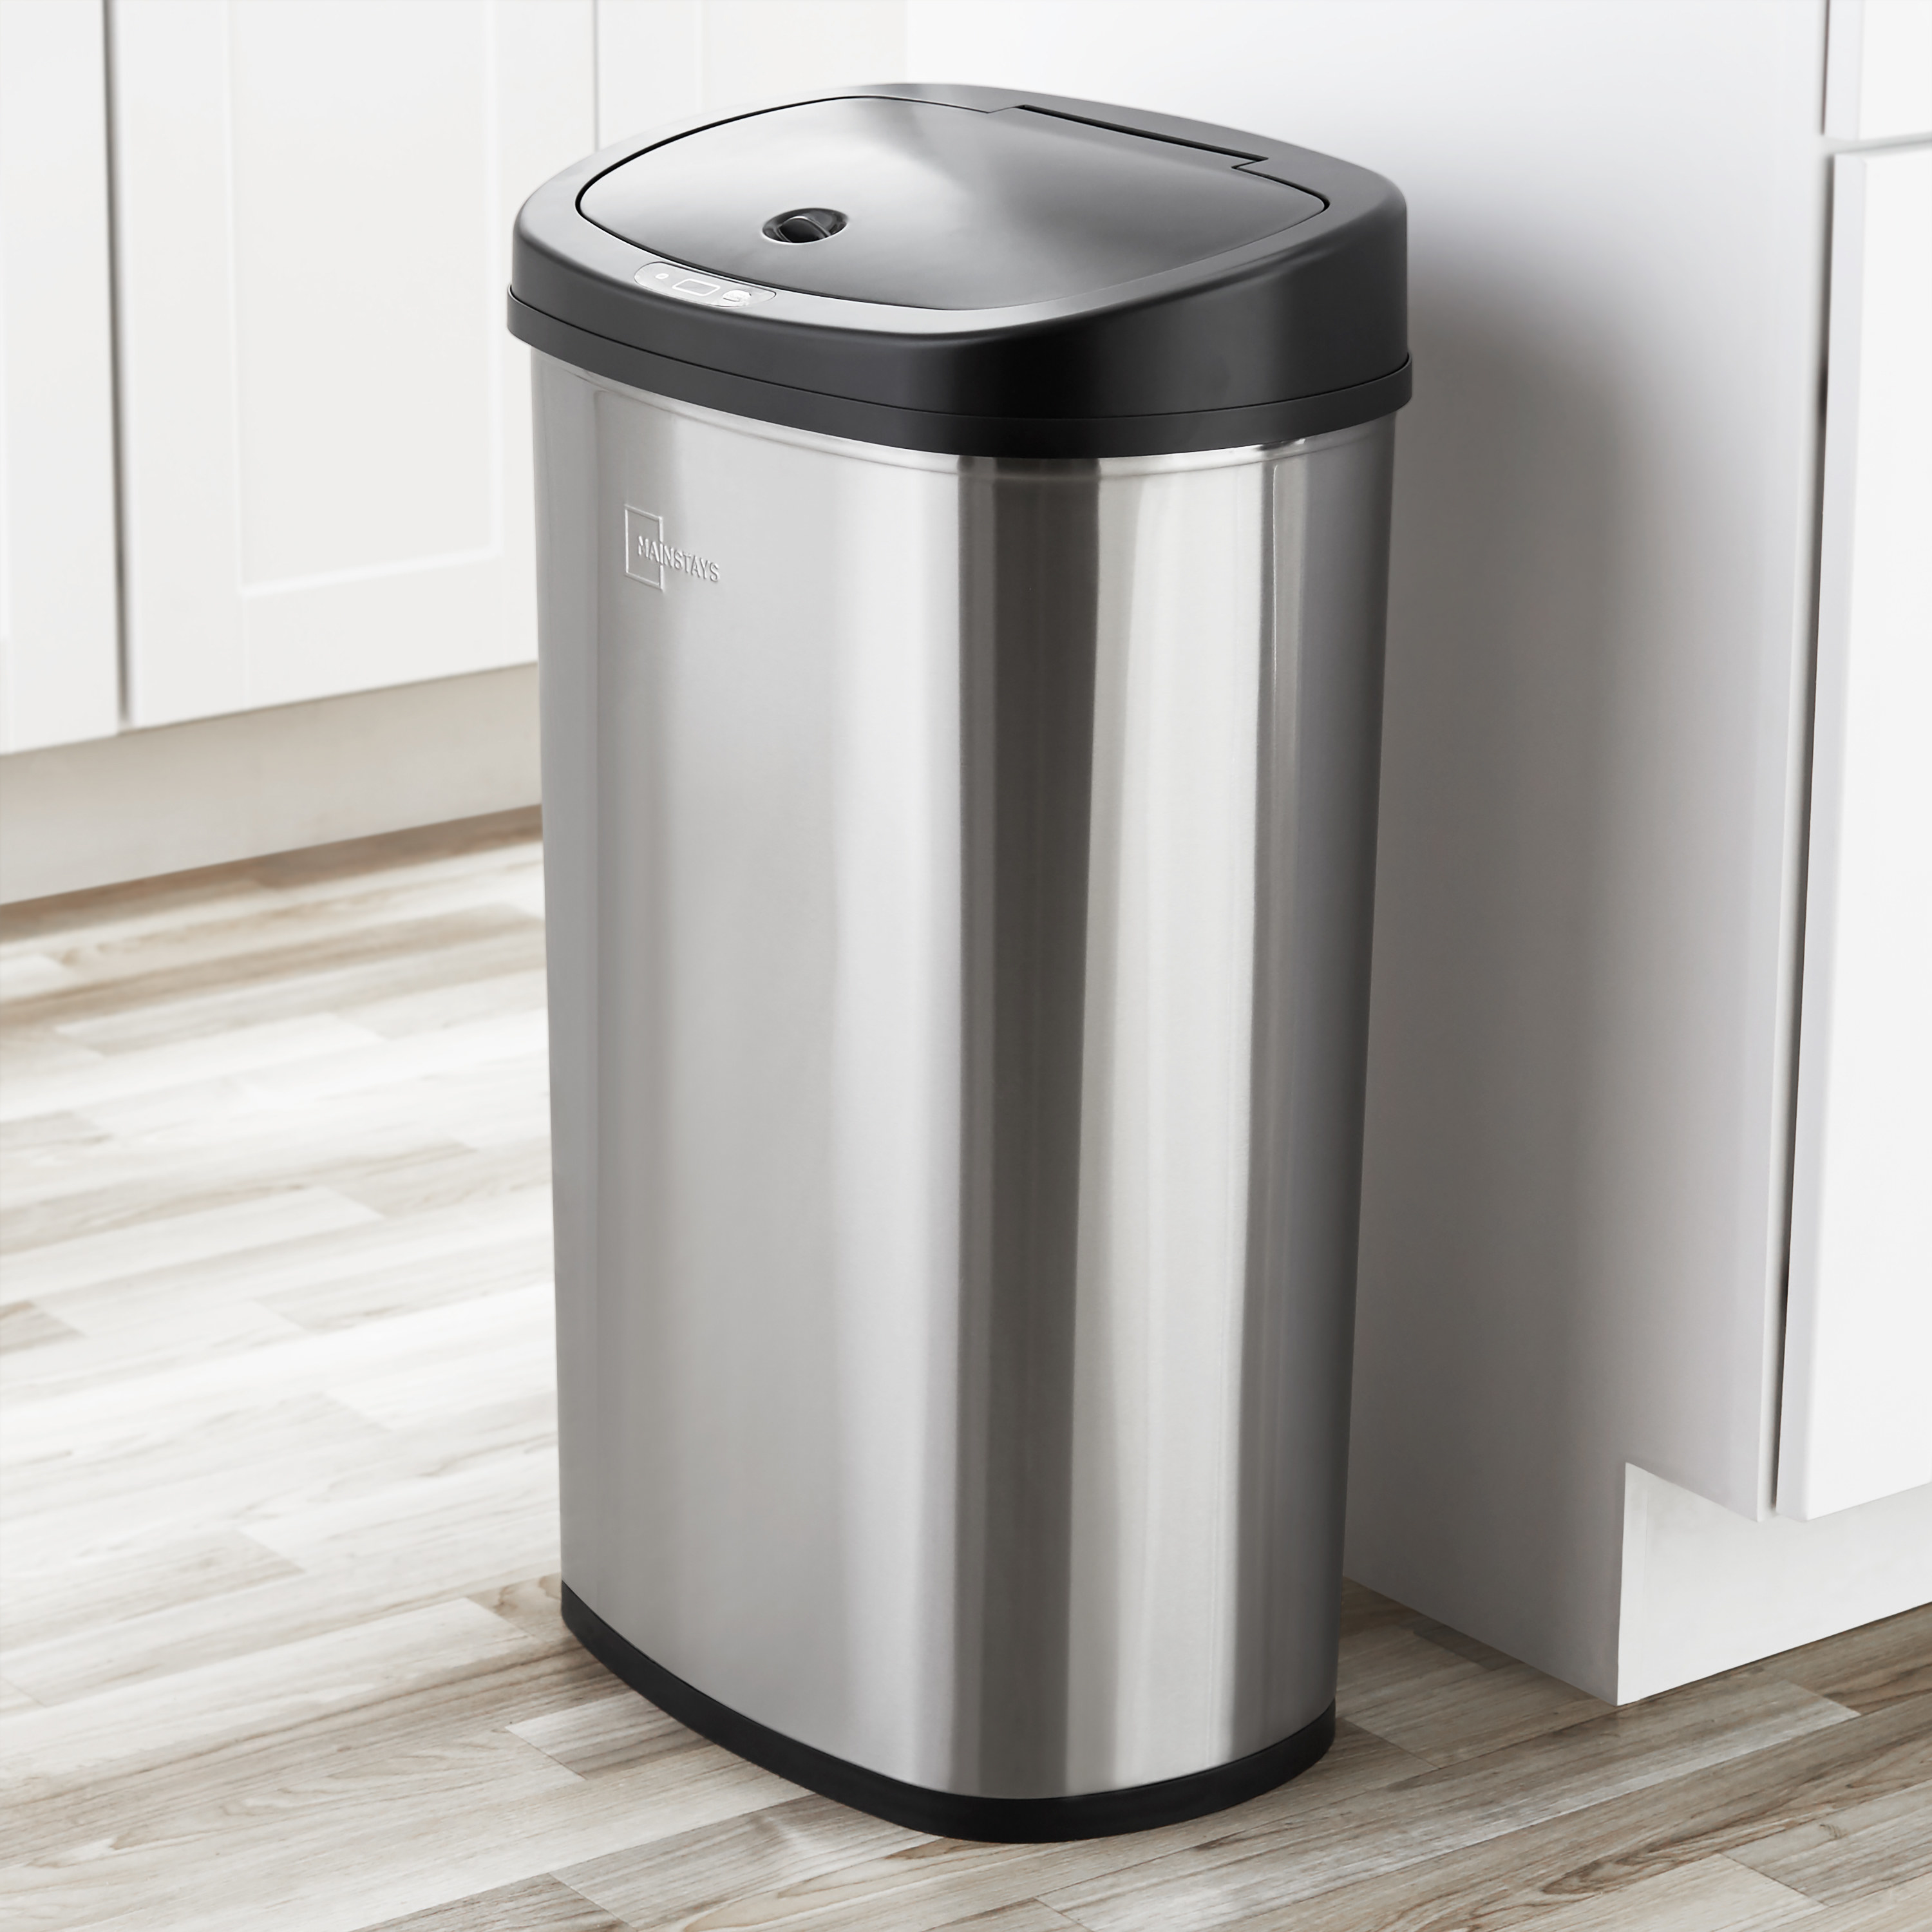 mainstays stainless steel trash can in a kitchen